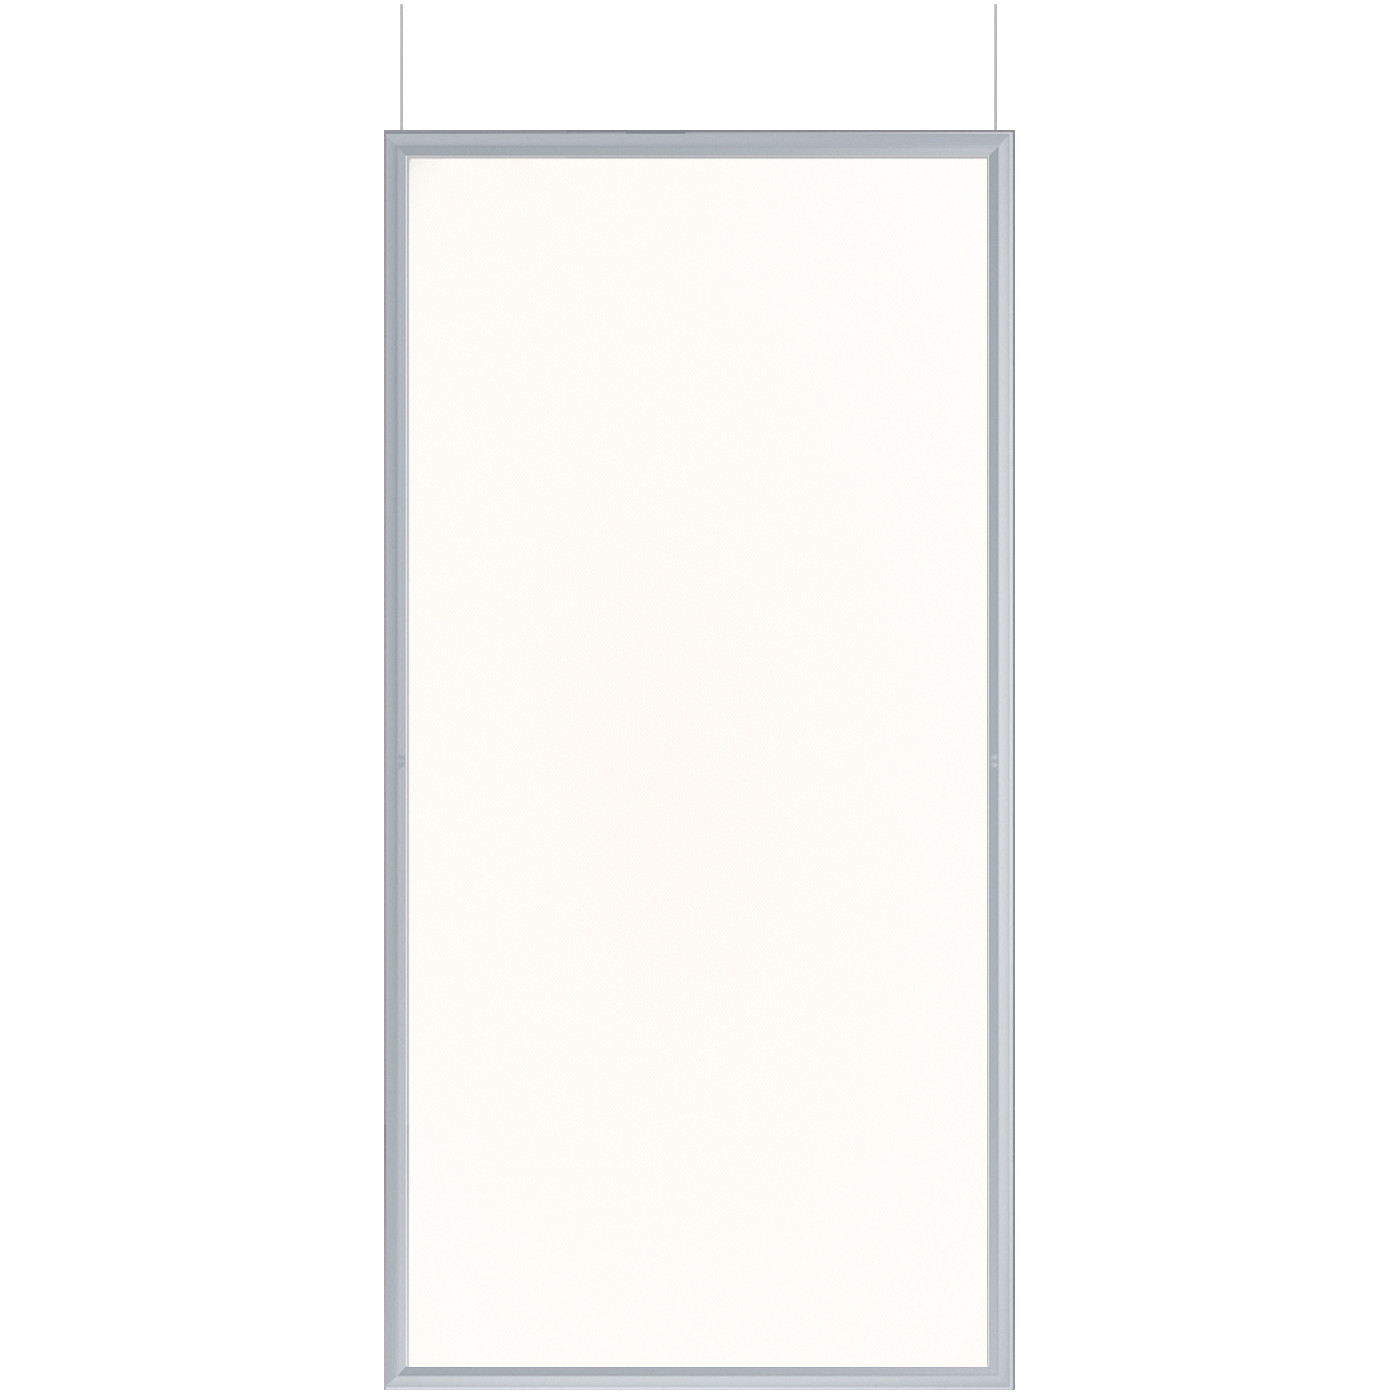 Artemide Discovery Space Rectangular LED